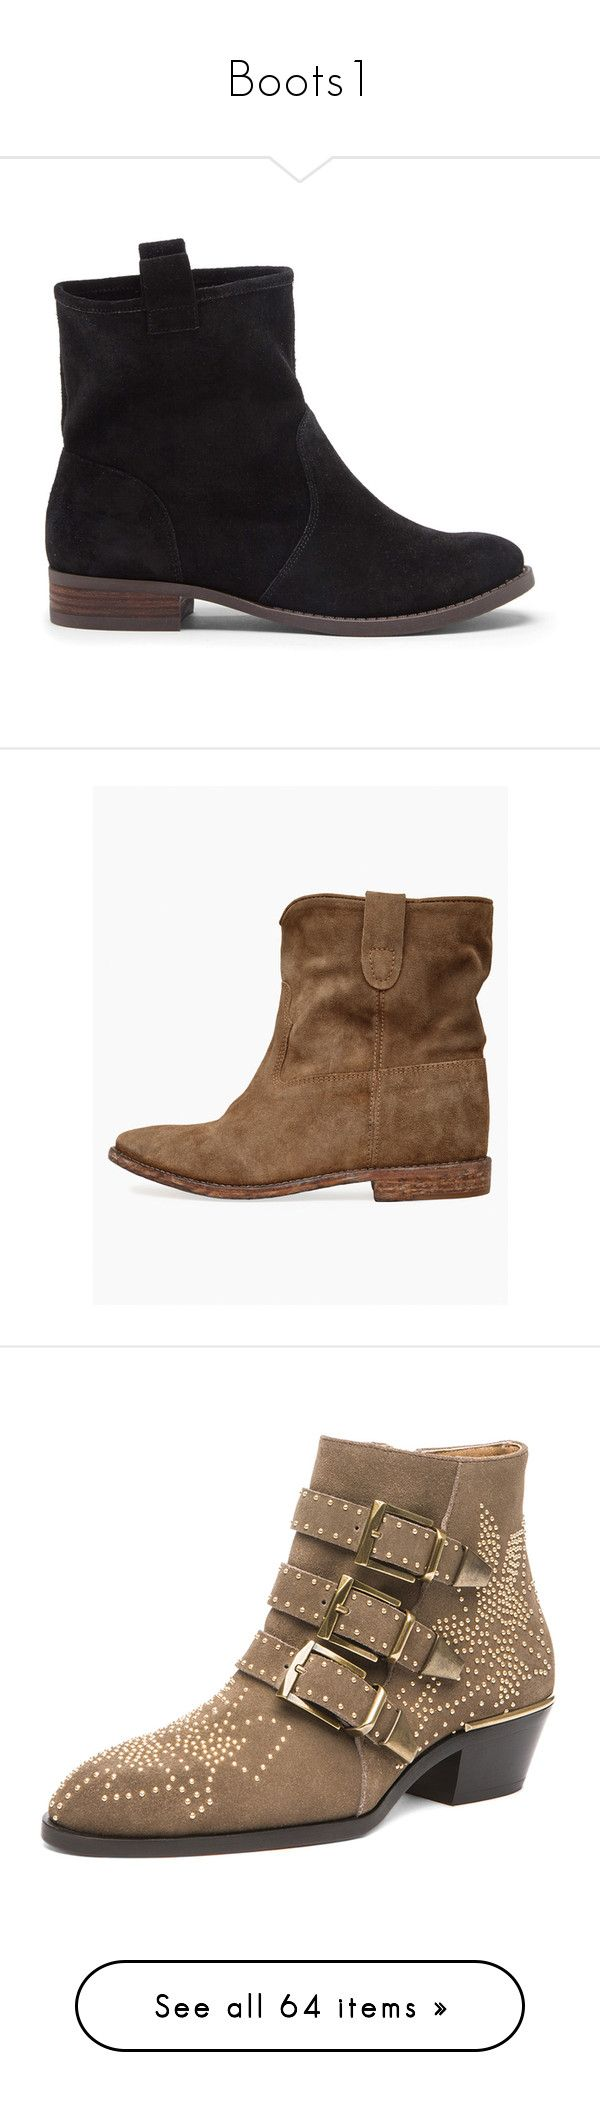 """""""Boots1"""" by caroovargas ❤ liked on Polyvore featuring shoes, boots, ankle booties, wedge bootie, short brown boots, brown boots, ankle boots, wedge heel boots, taupe and taupe suede booties"""